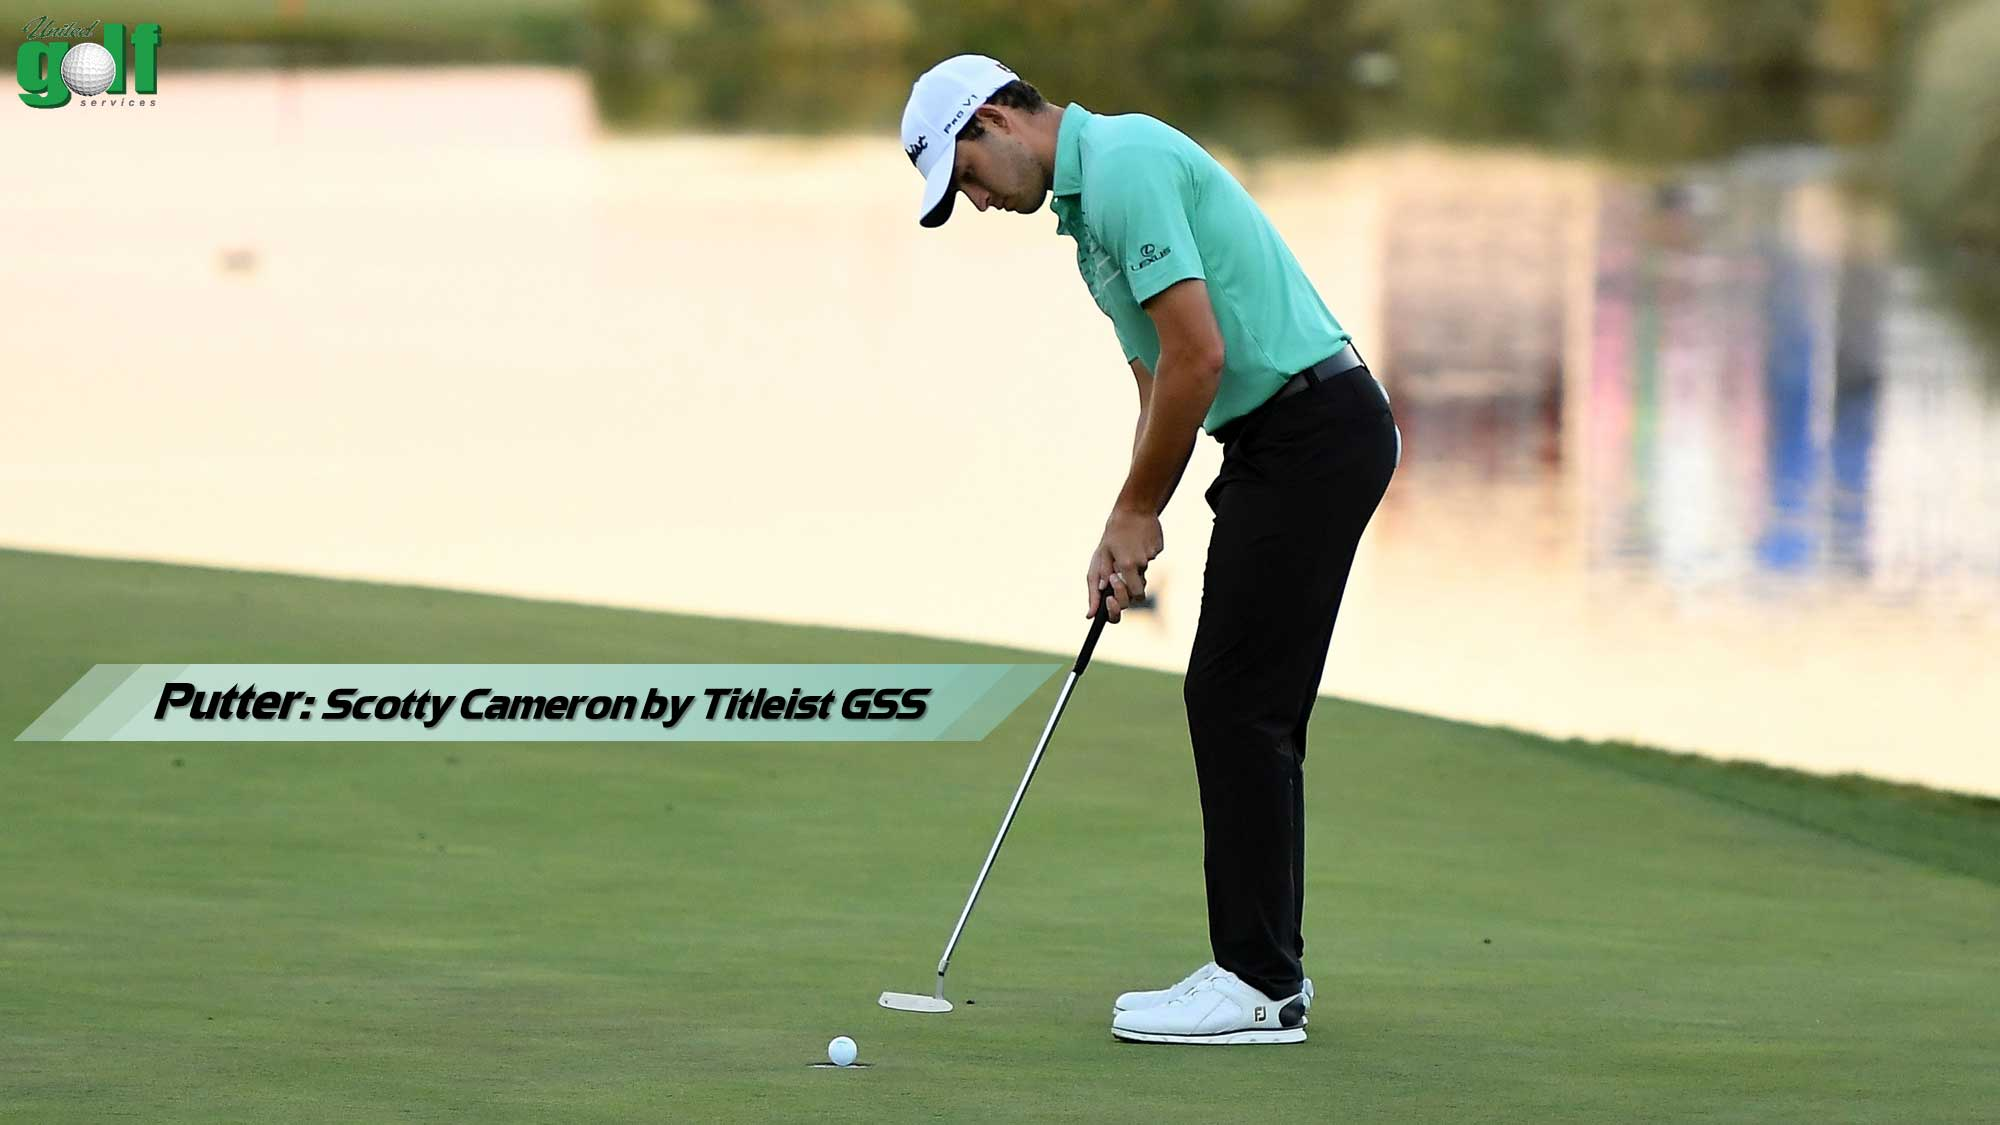 [TIPS] The Club Bag Bringing The First Pga Tour Title To Patrick Cantlay